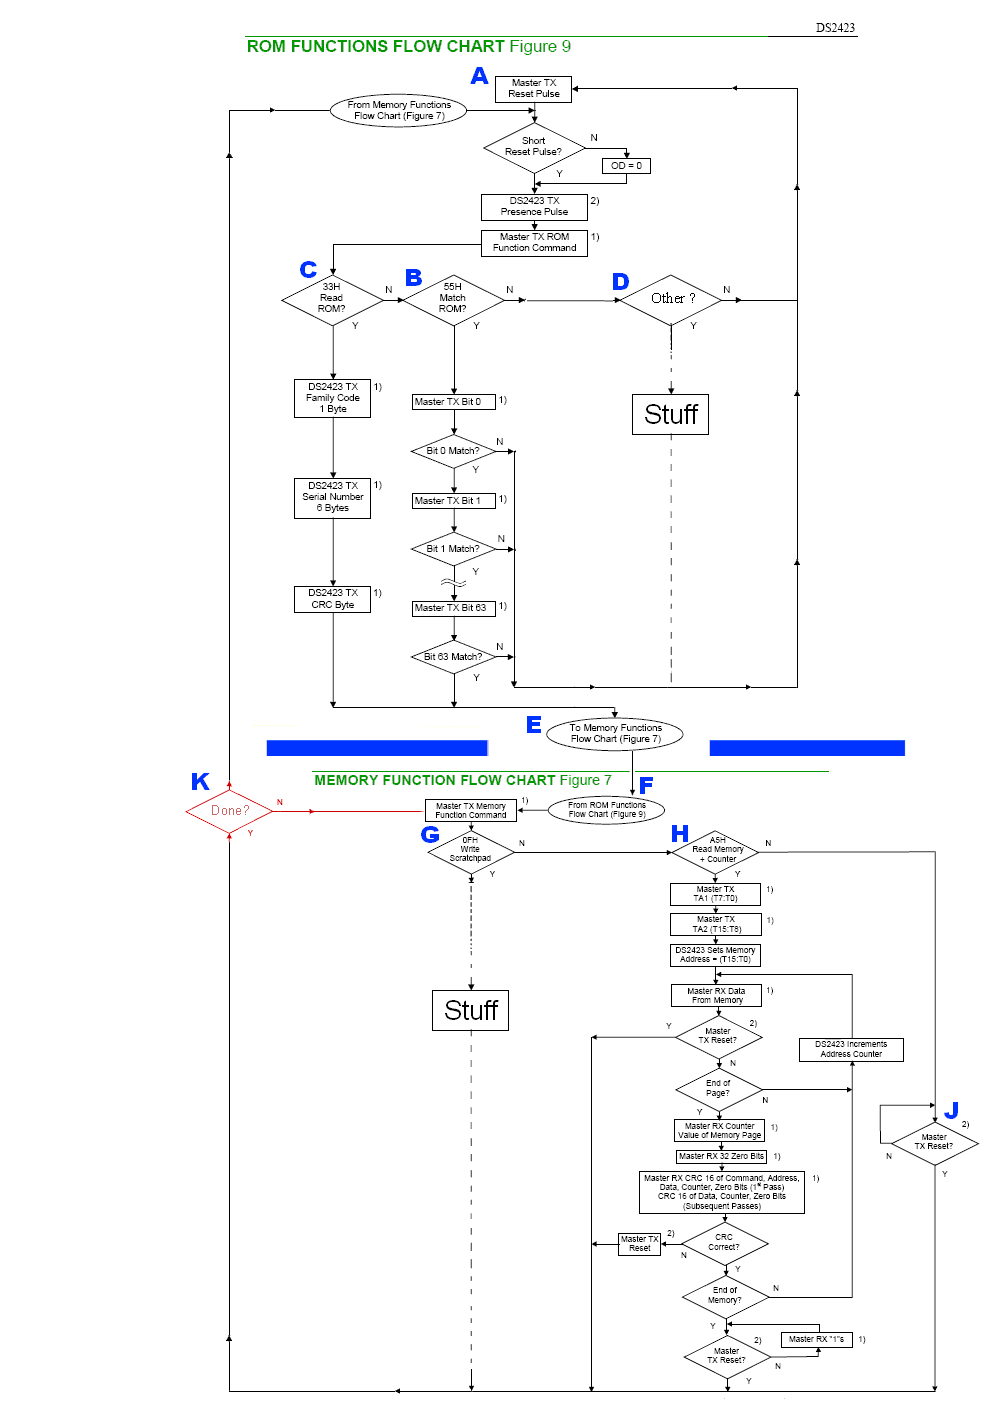 Diagram of 1-Wire or MicroLan operations